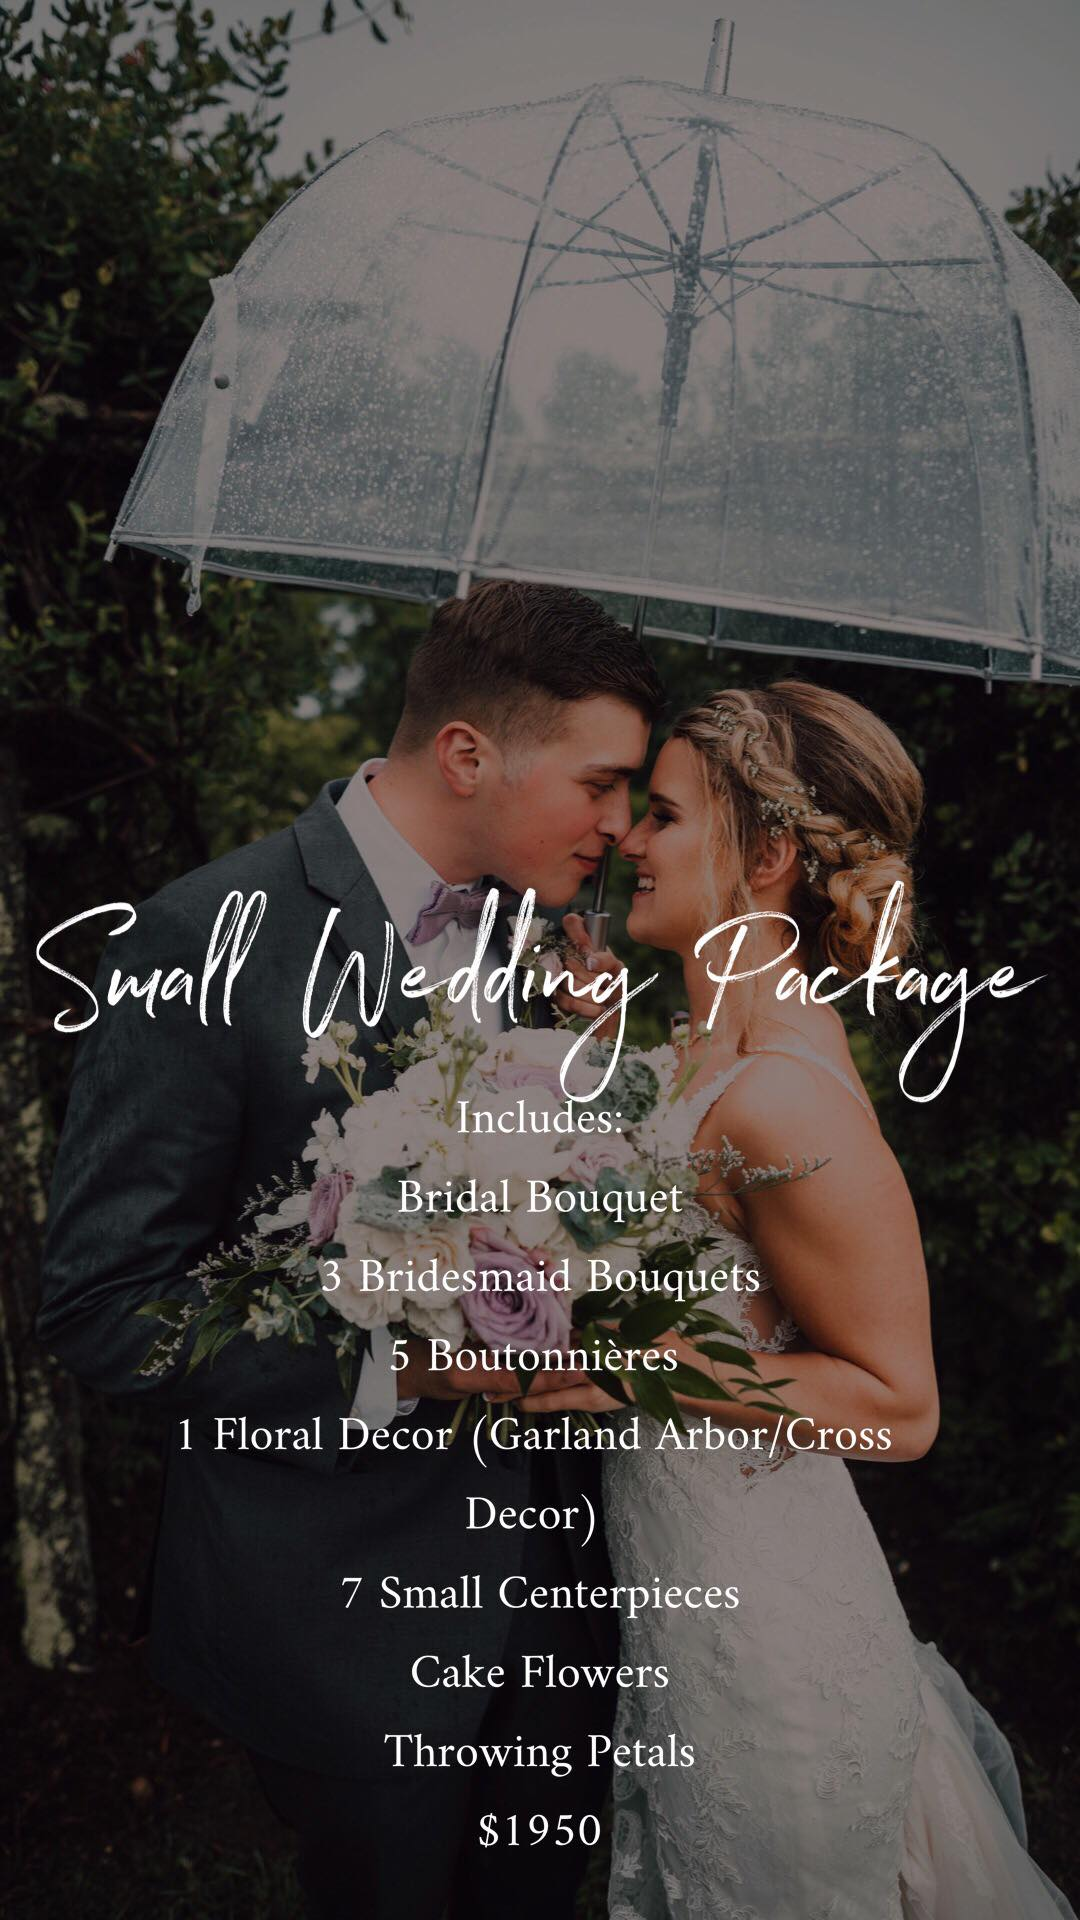 Small Wedding Package- $1950